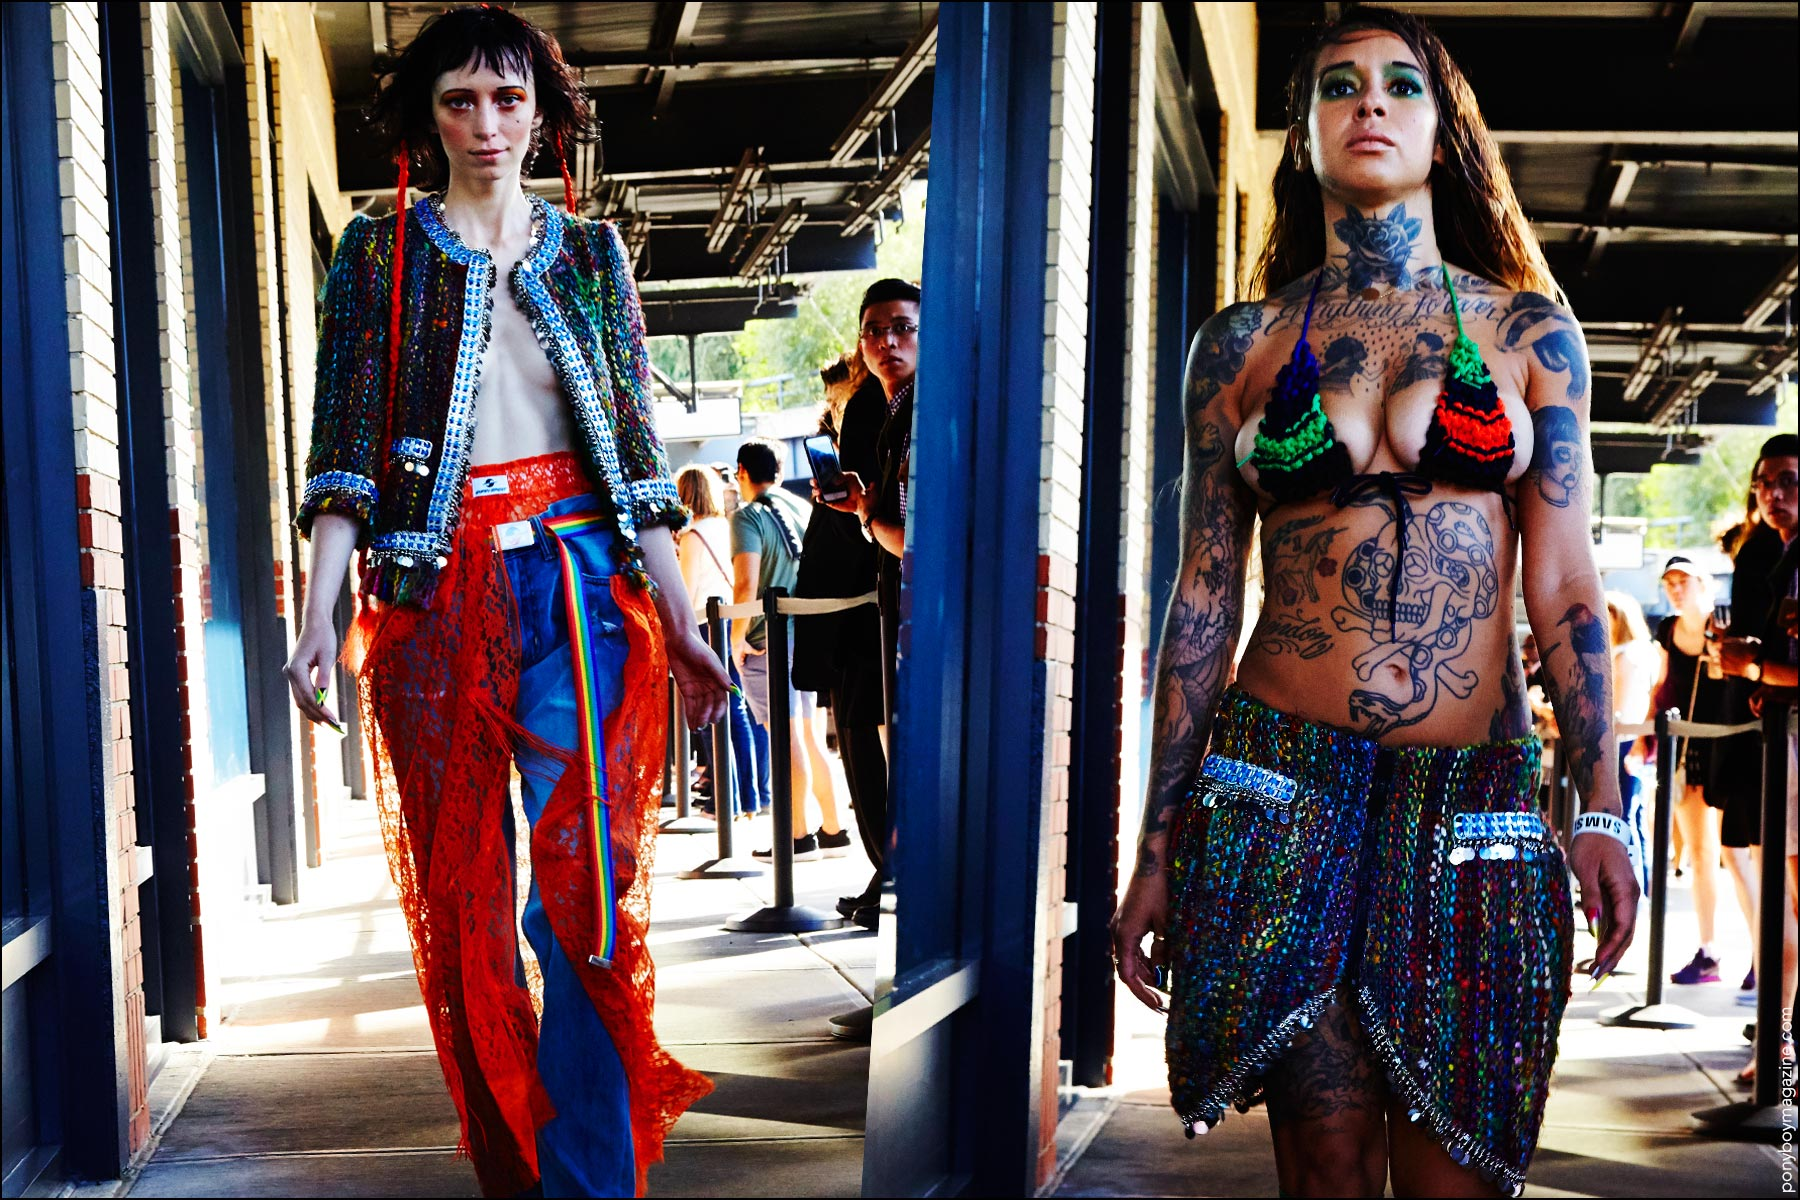 Eclectic creations at the Gypsy Sport S/S 2017 sidewalk runway show from New York Fashion Week. Photographed by Alexander Thompson for Ponyboy magazine.